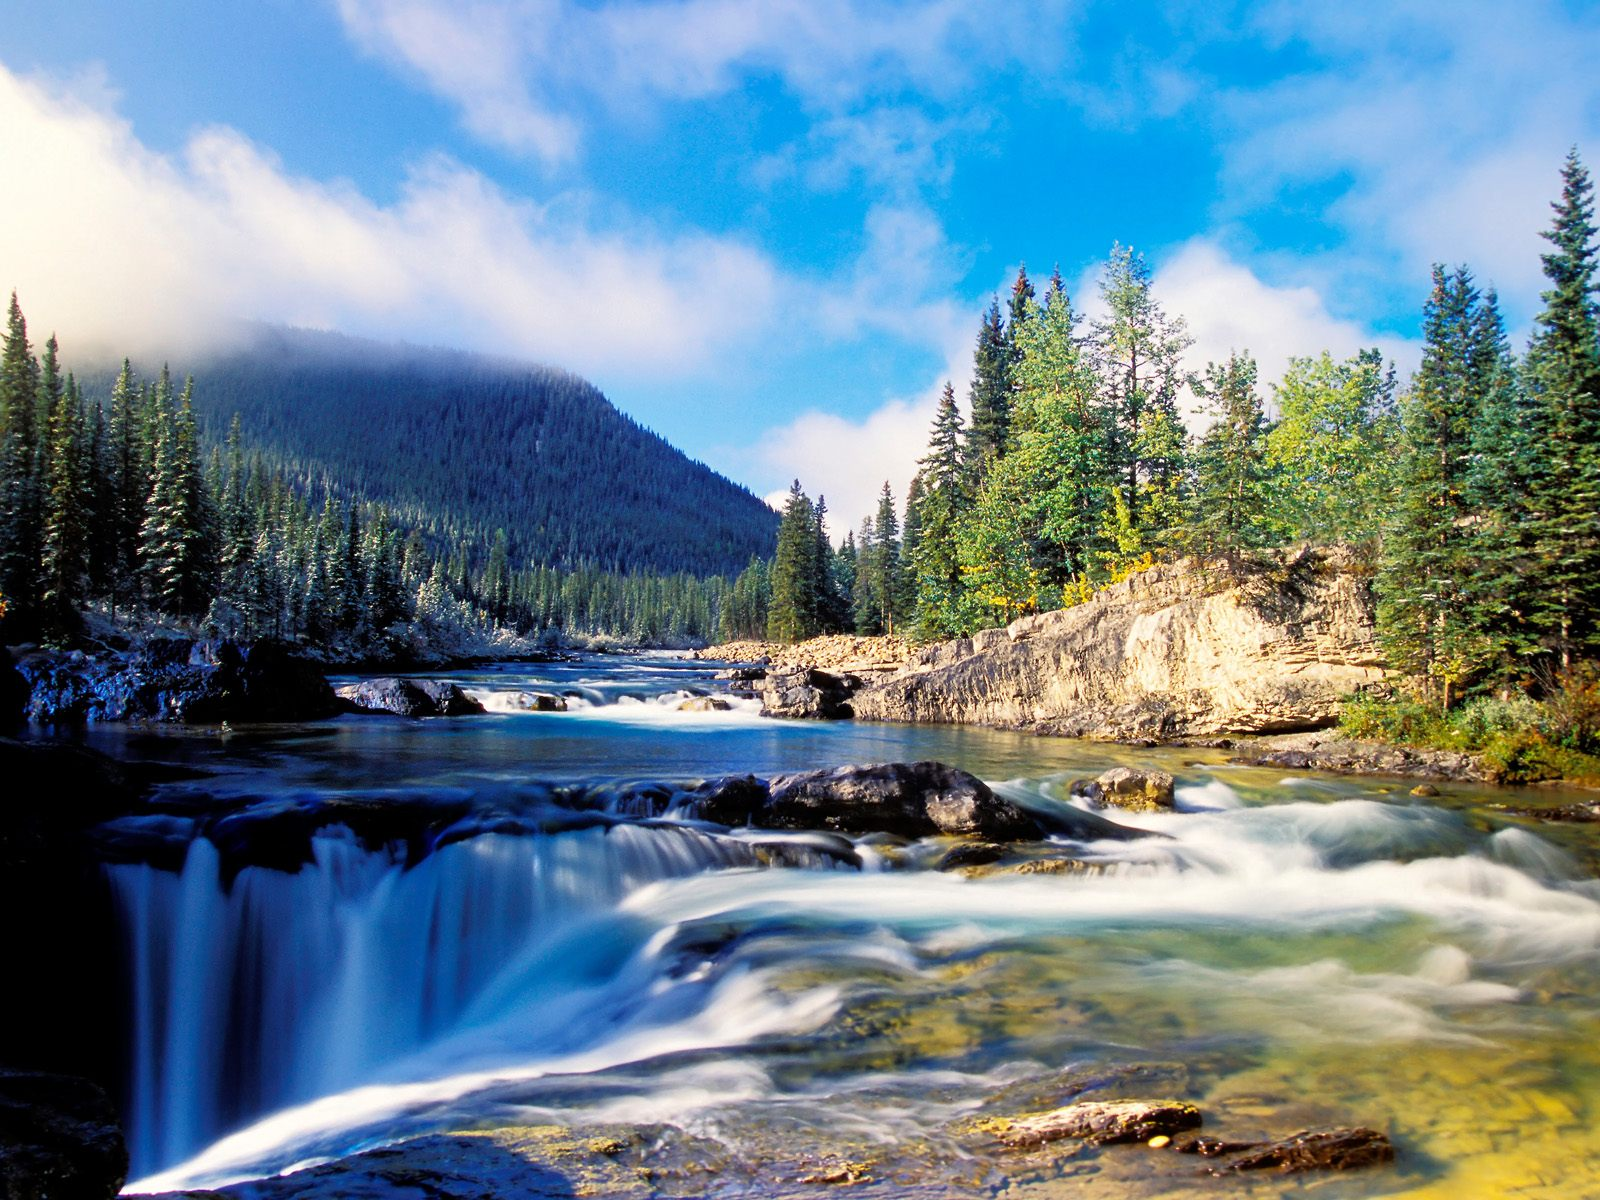 Free download HQ Elbow River And Falls Kananaskis Country